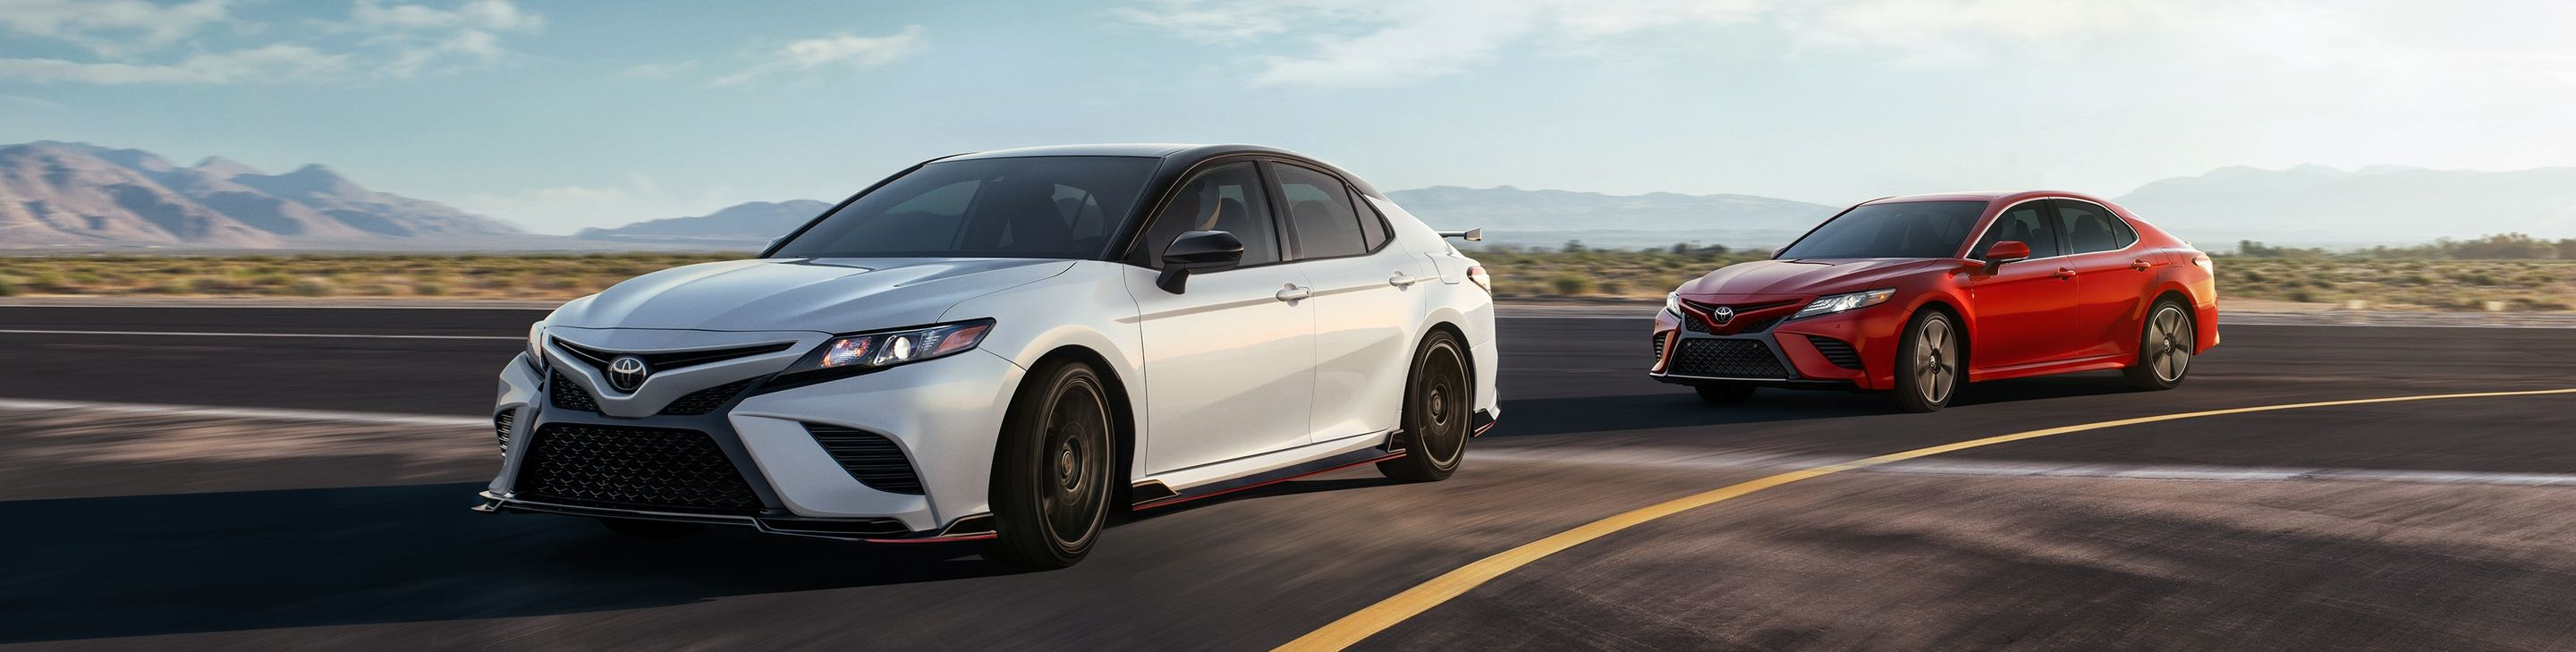 2020 Toyota Camry for Sale near San Jose, CA